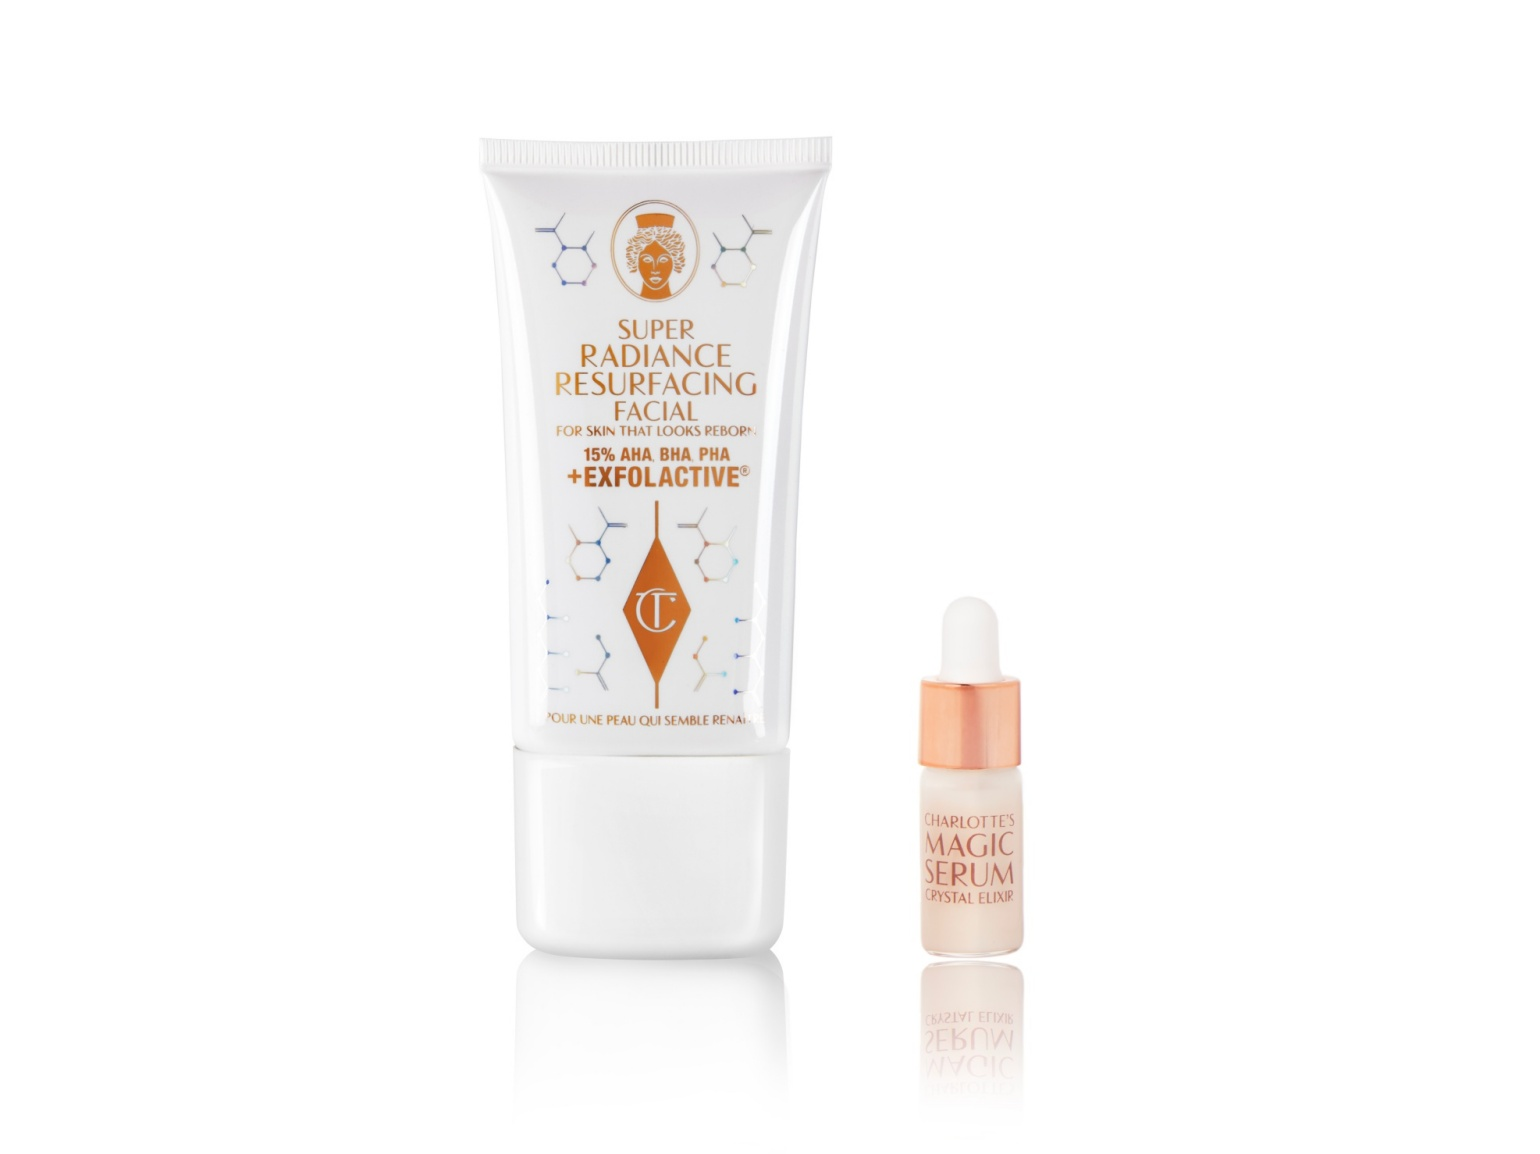 charlotte-tilbury-super-radiance-resurfacing-facial-serum-packshot